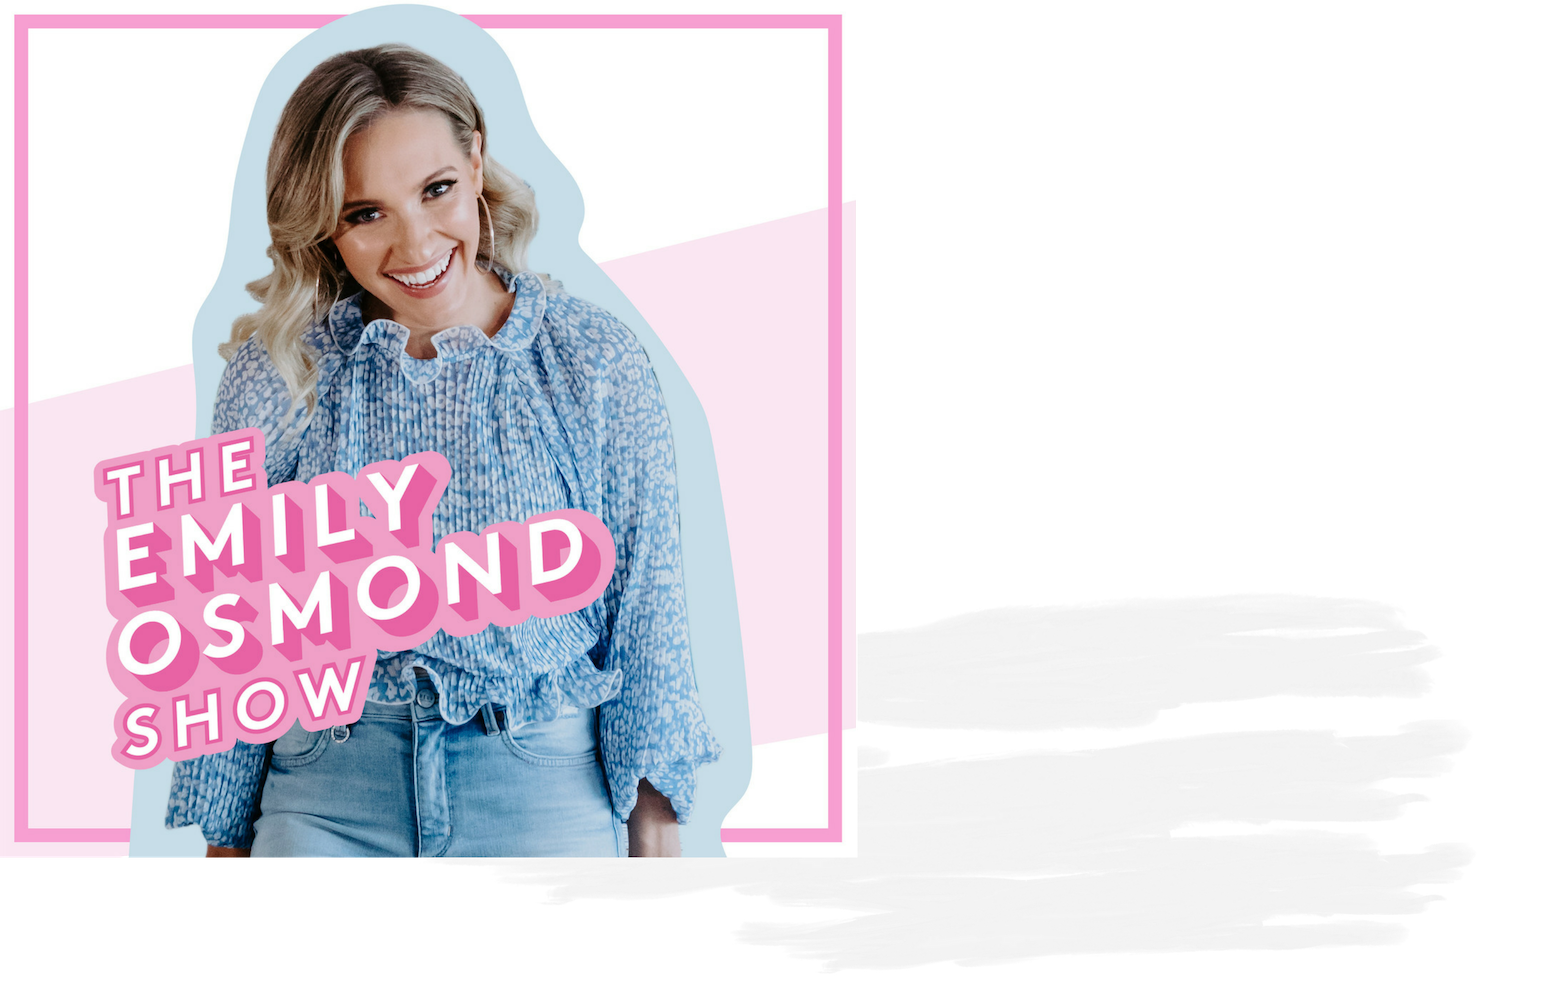 Welcome to the emily osmond show - Learn how to market yourself online, find your tribe and grow a business doing the work you love, on your terms.